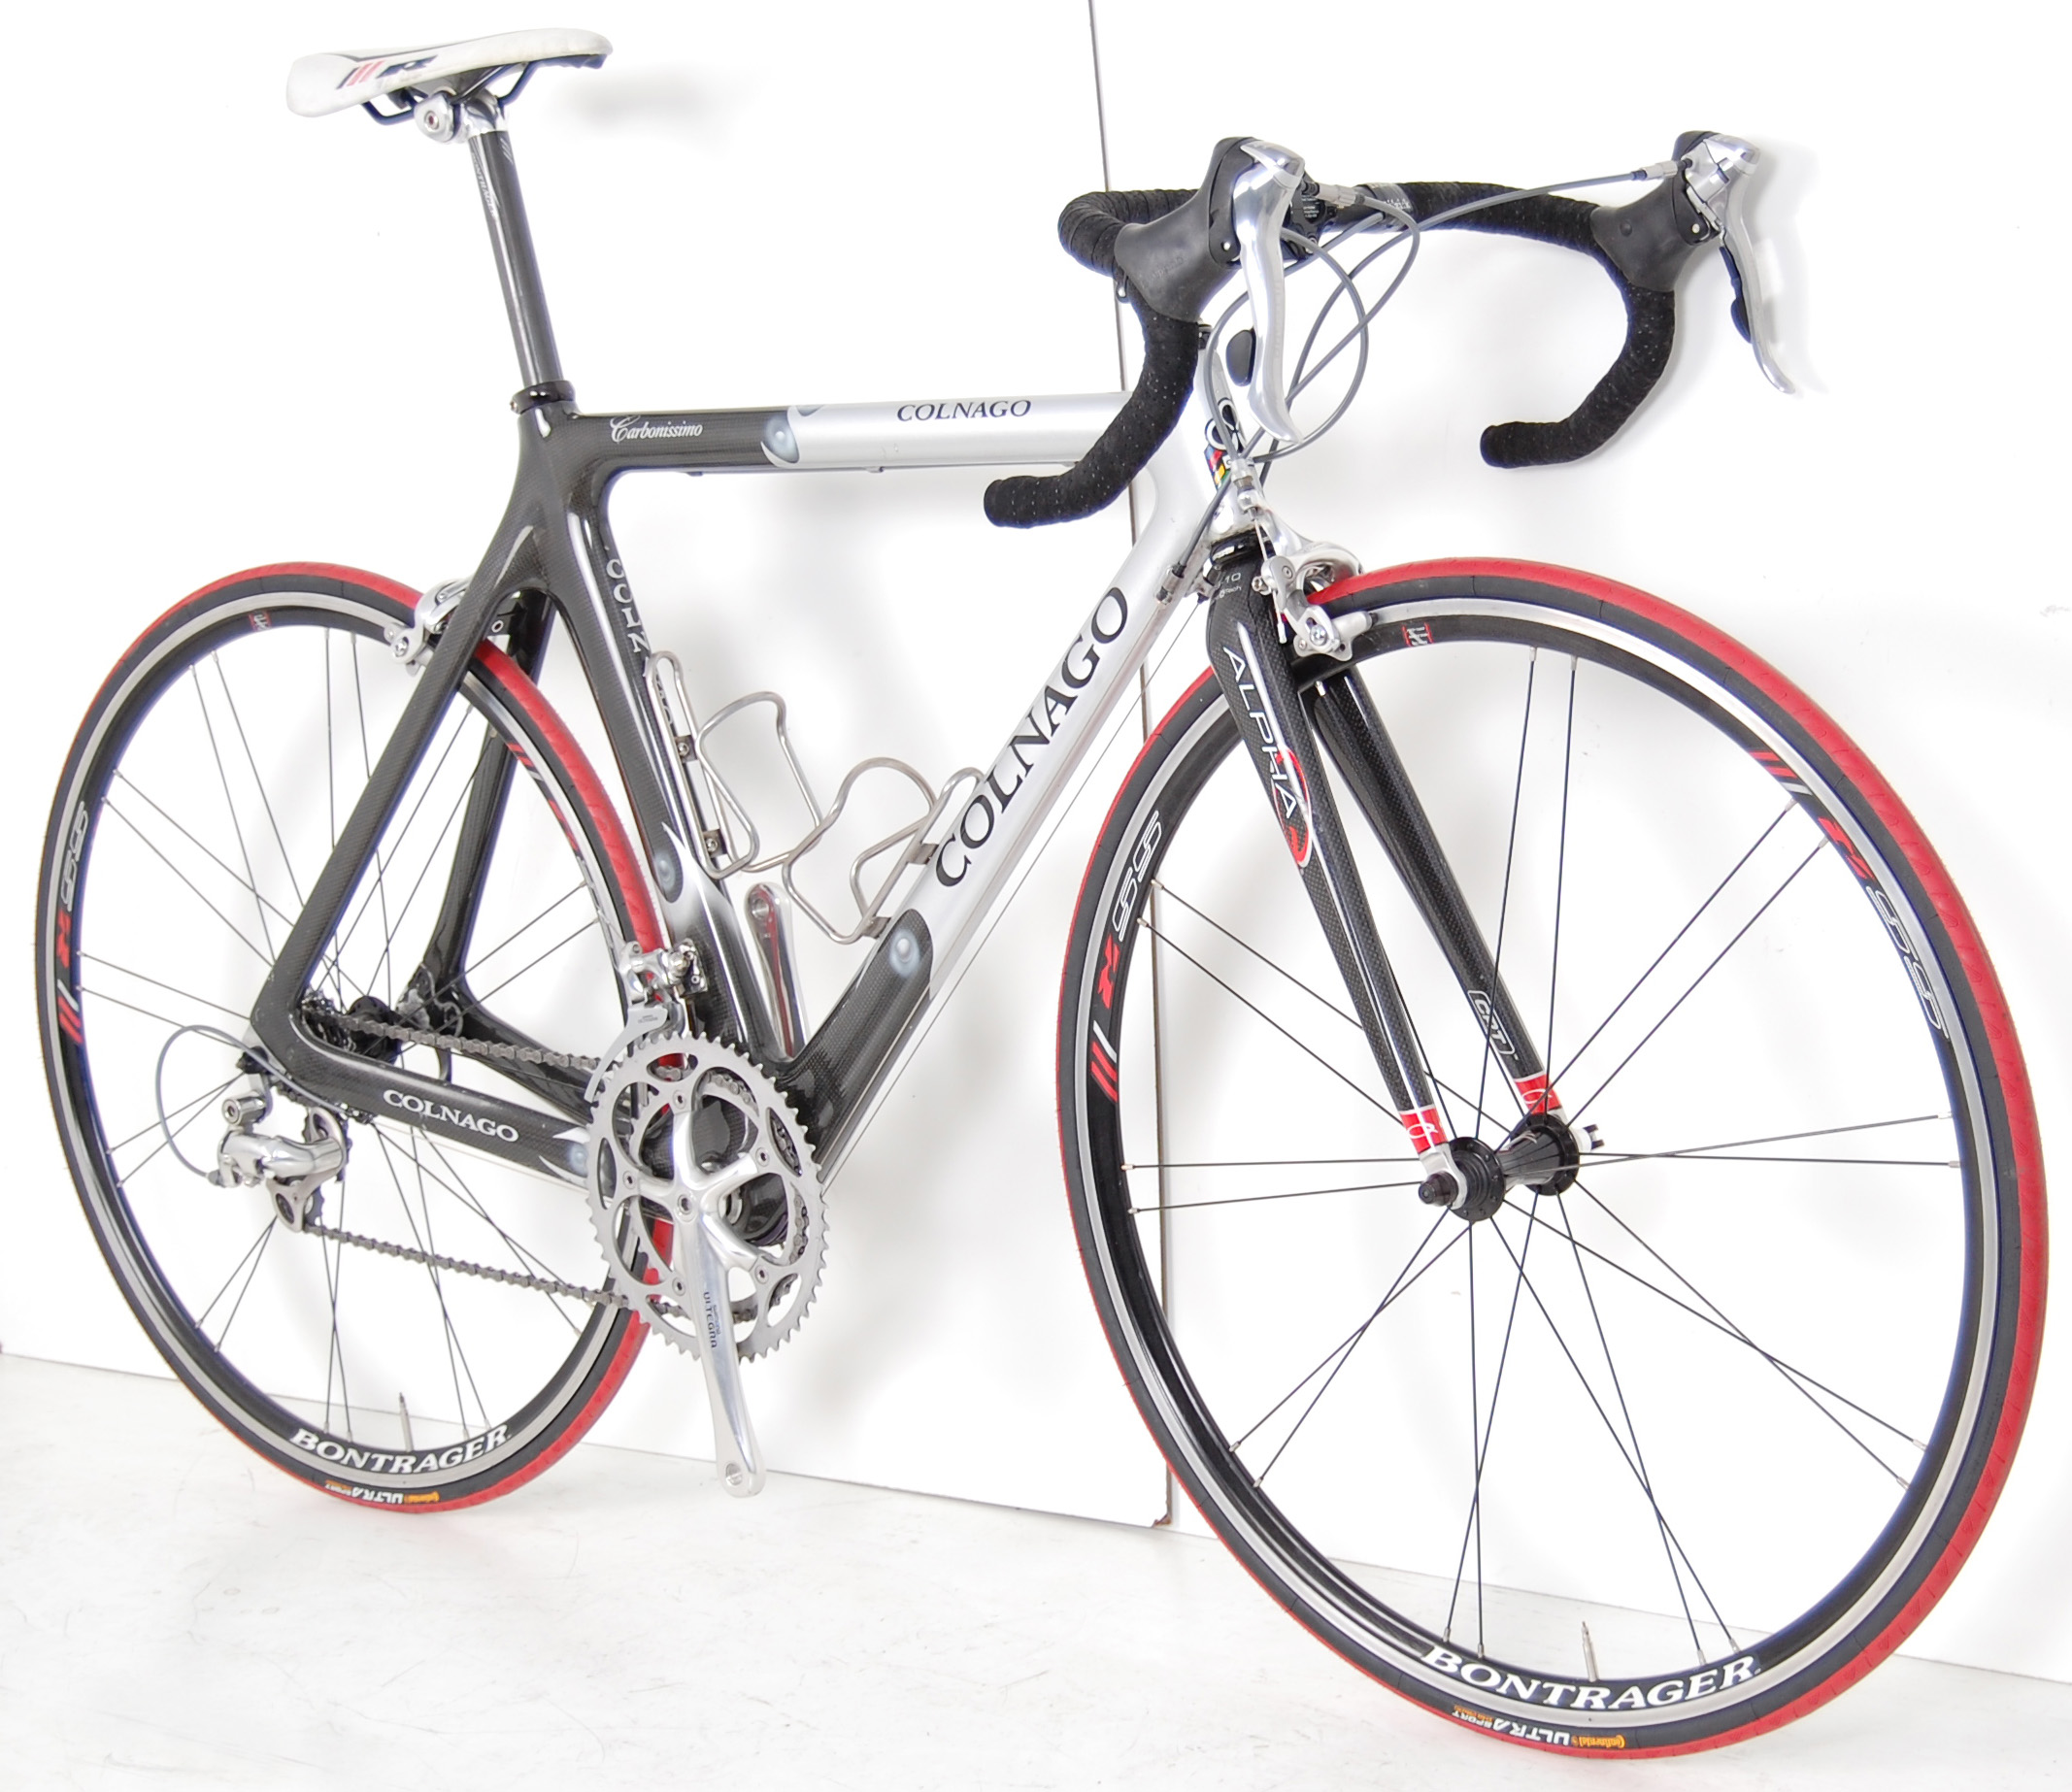 Colnago Carbon Road Bicycle Shimano Ultegra Race Bike Bontrager Wheels